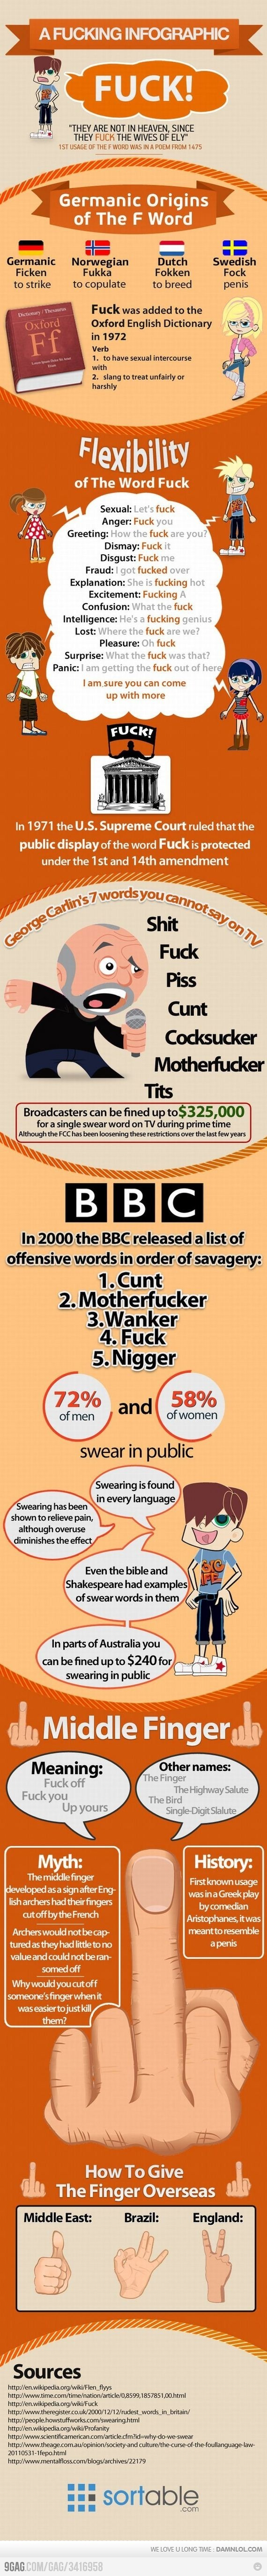 A Fu**ing infographic.